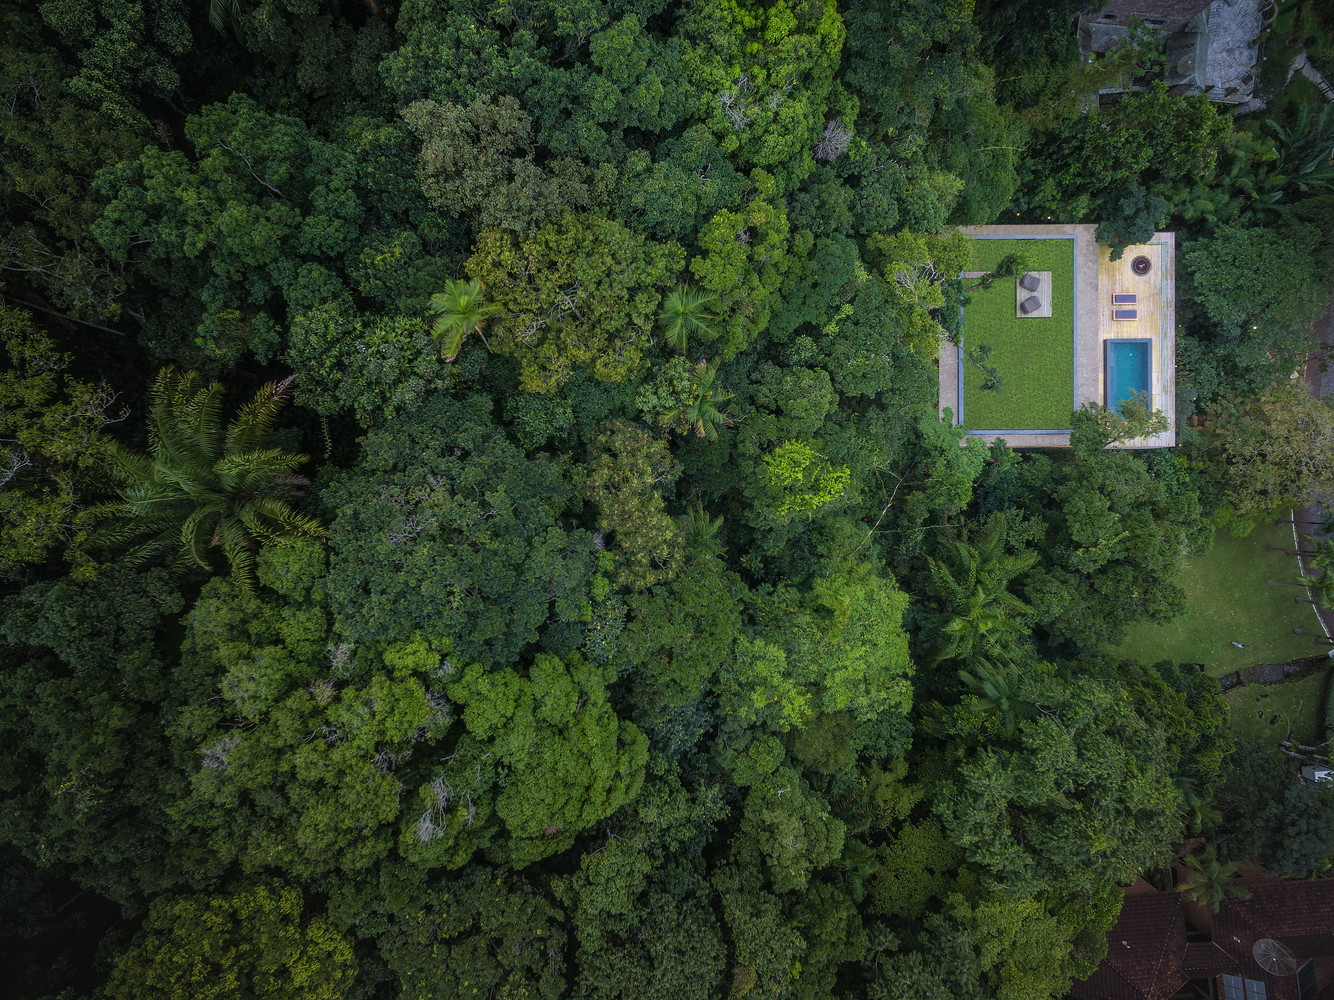 Jungle house from above